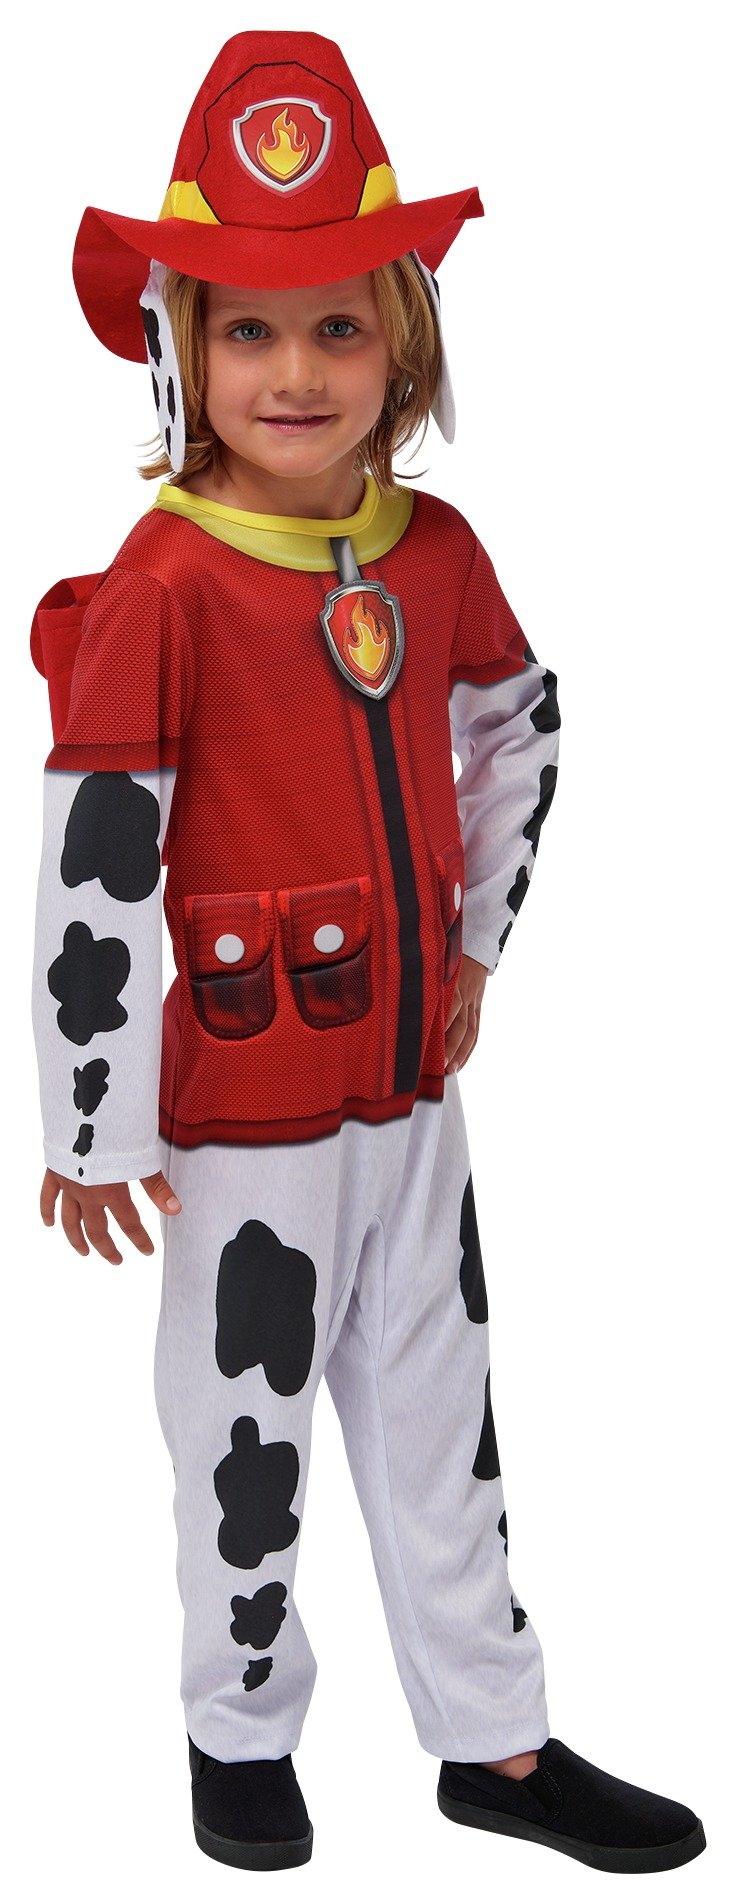 PAW Patrol Marshall Fancy Dress Costume - 5-6 Years